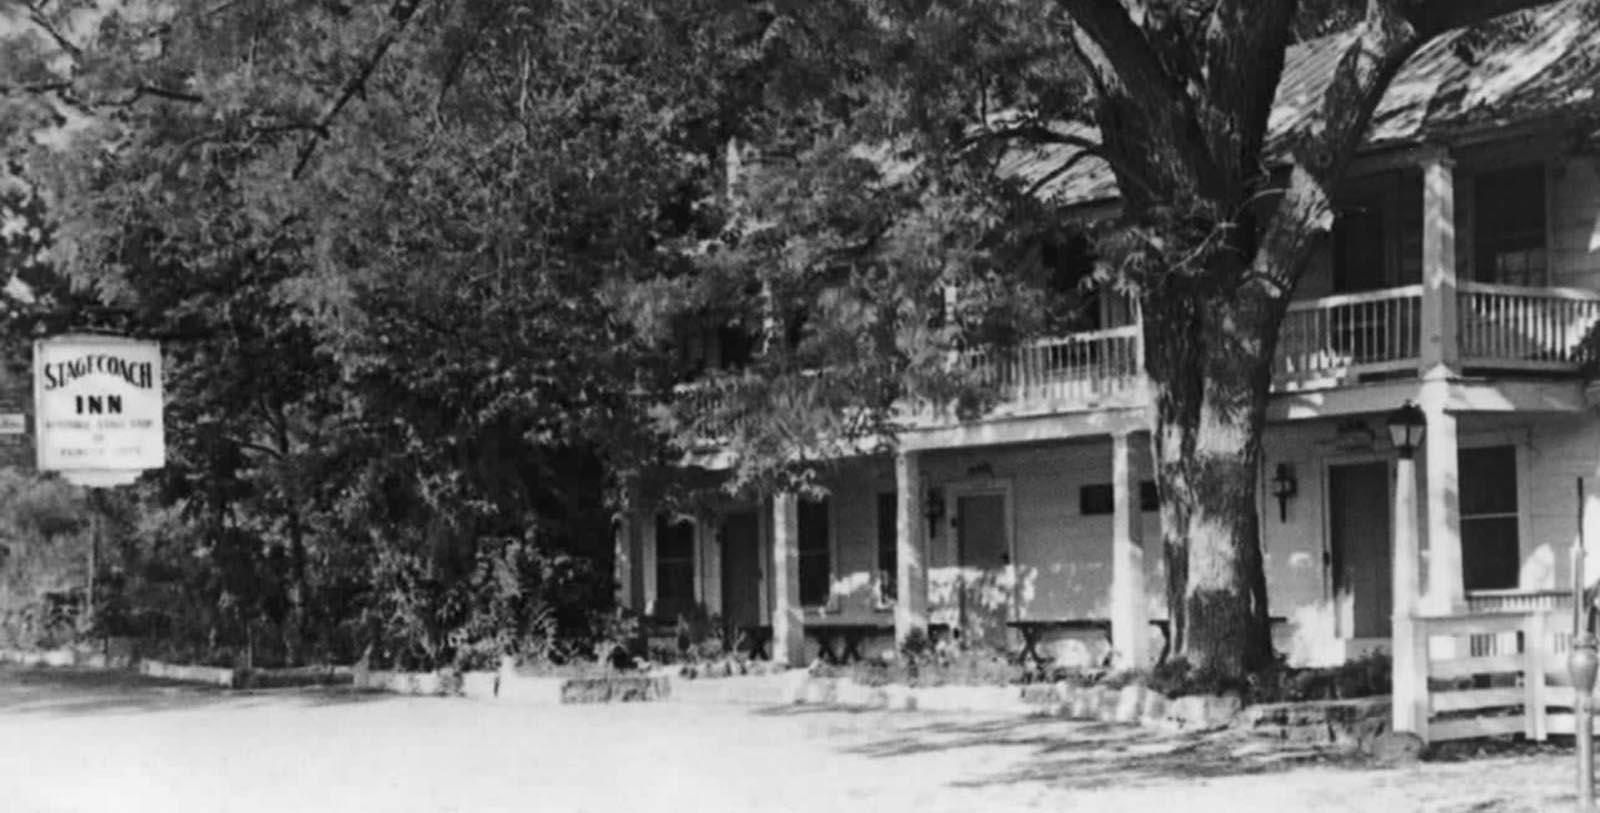 Historic Image of Hotel Exterior The Stagecoach Inn, 1852, Member of Historic Hotels of America, in Salado, Texas, Discover